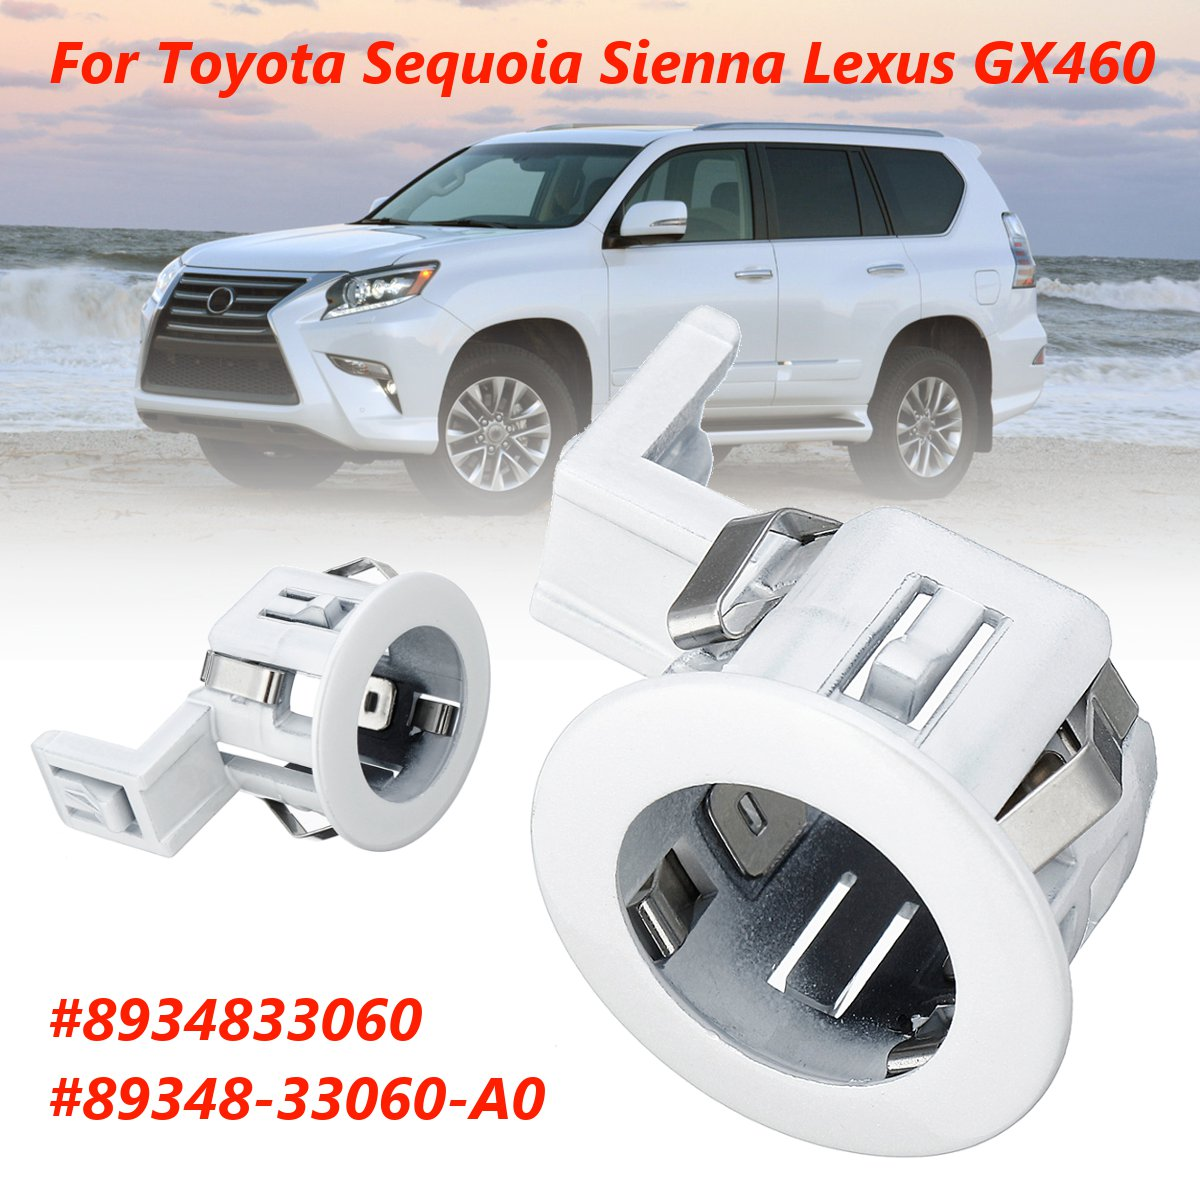 Parking Sensor Retainer PDC For Toyota Sequoia Sienna for Lexus GX460 8934833060 89348 33060 A0|Parking Sensors| - AliExpress